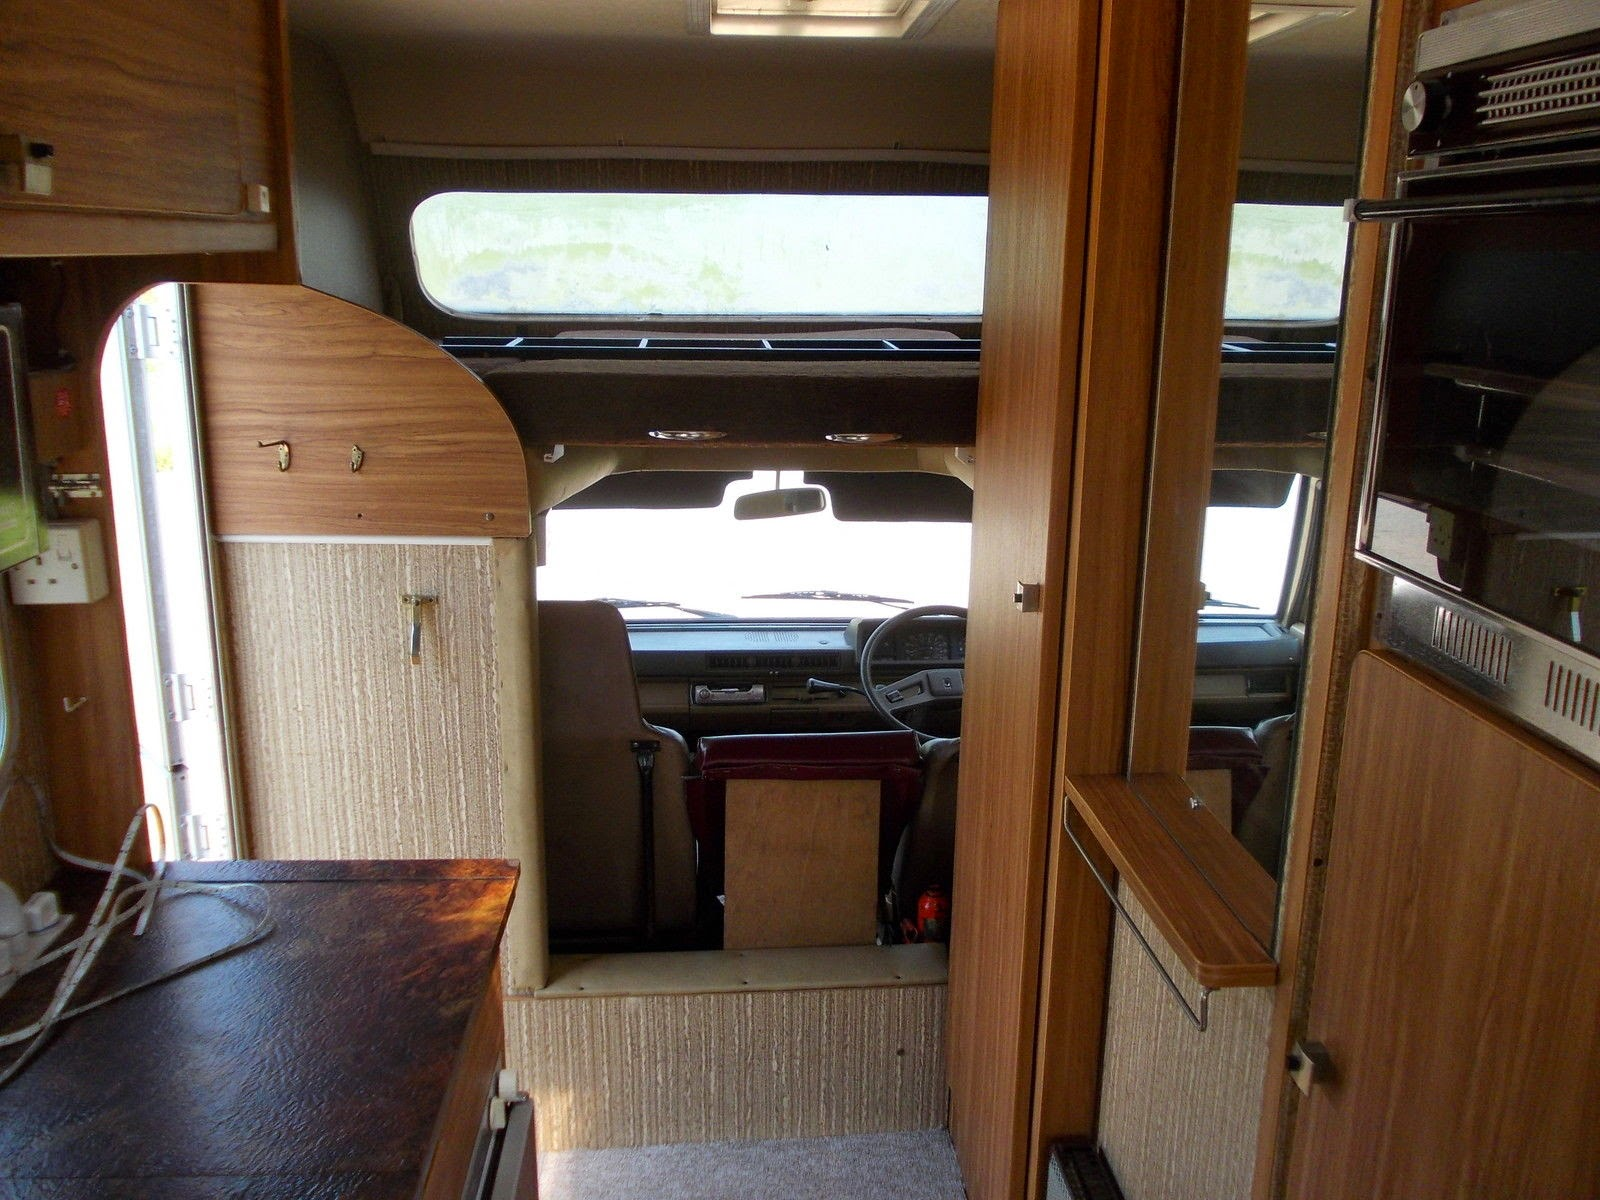 Used RVs Mitsubishi L300 Pioneer Small Motorhome For Sale By Owner